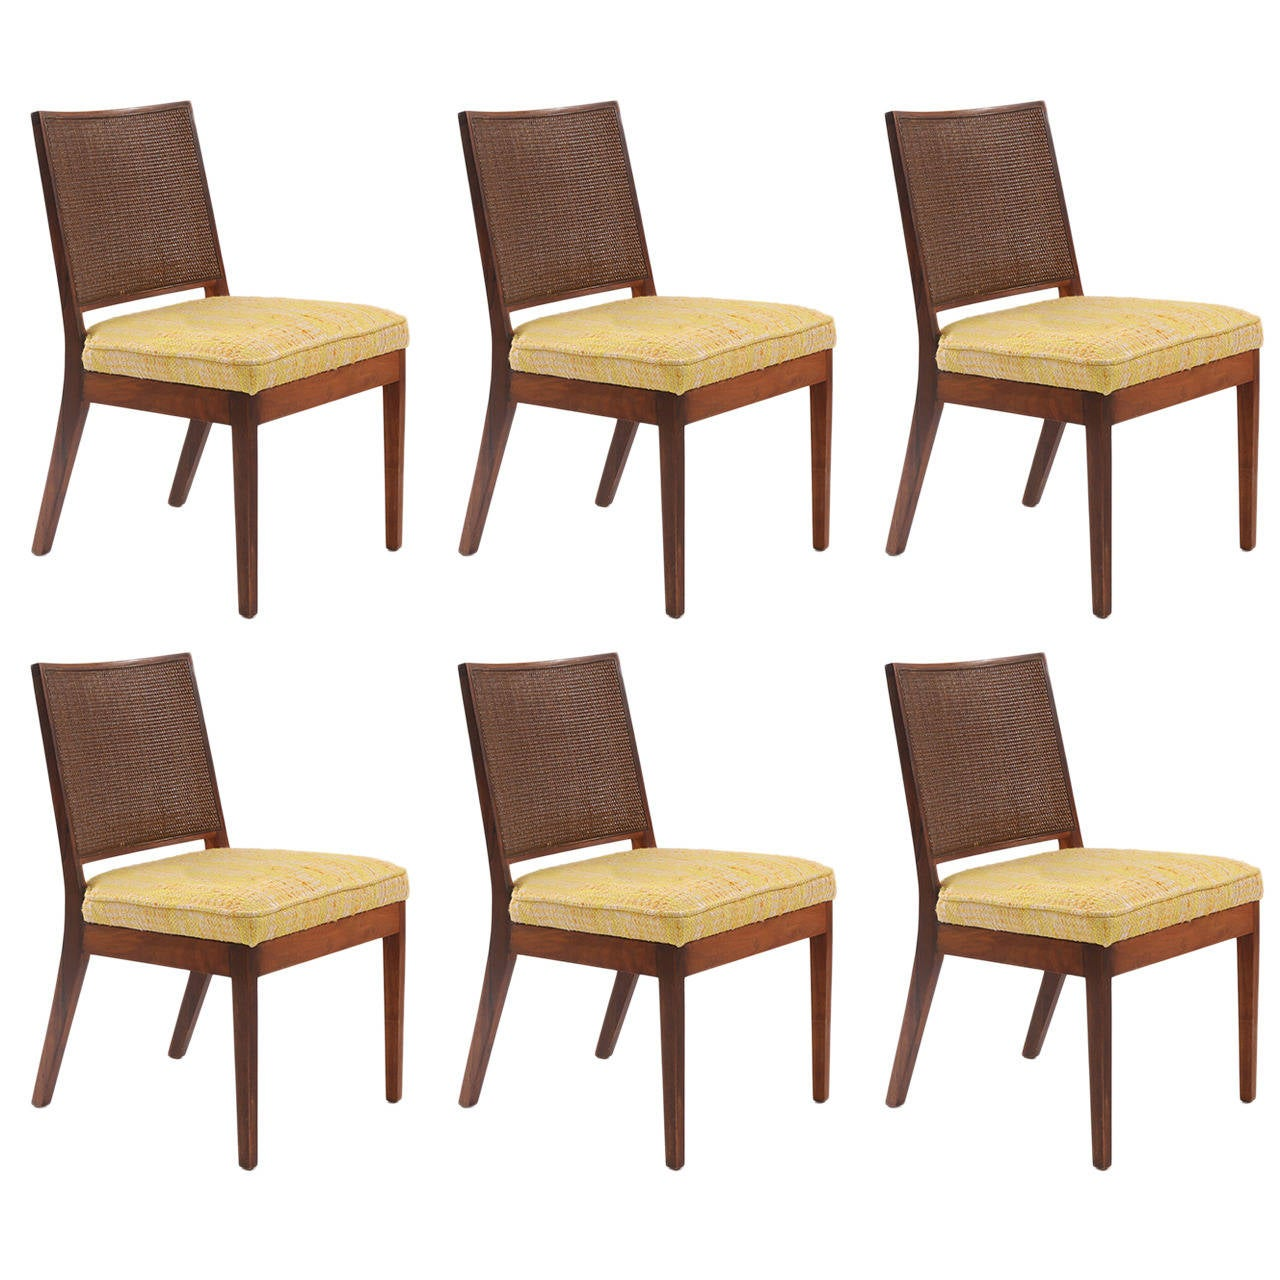 Six Solid Walnut Dining Chairs By John Kapel For Sale At